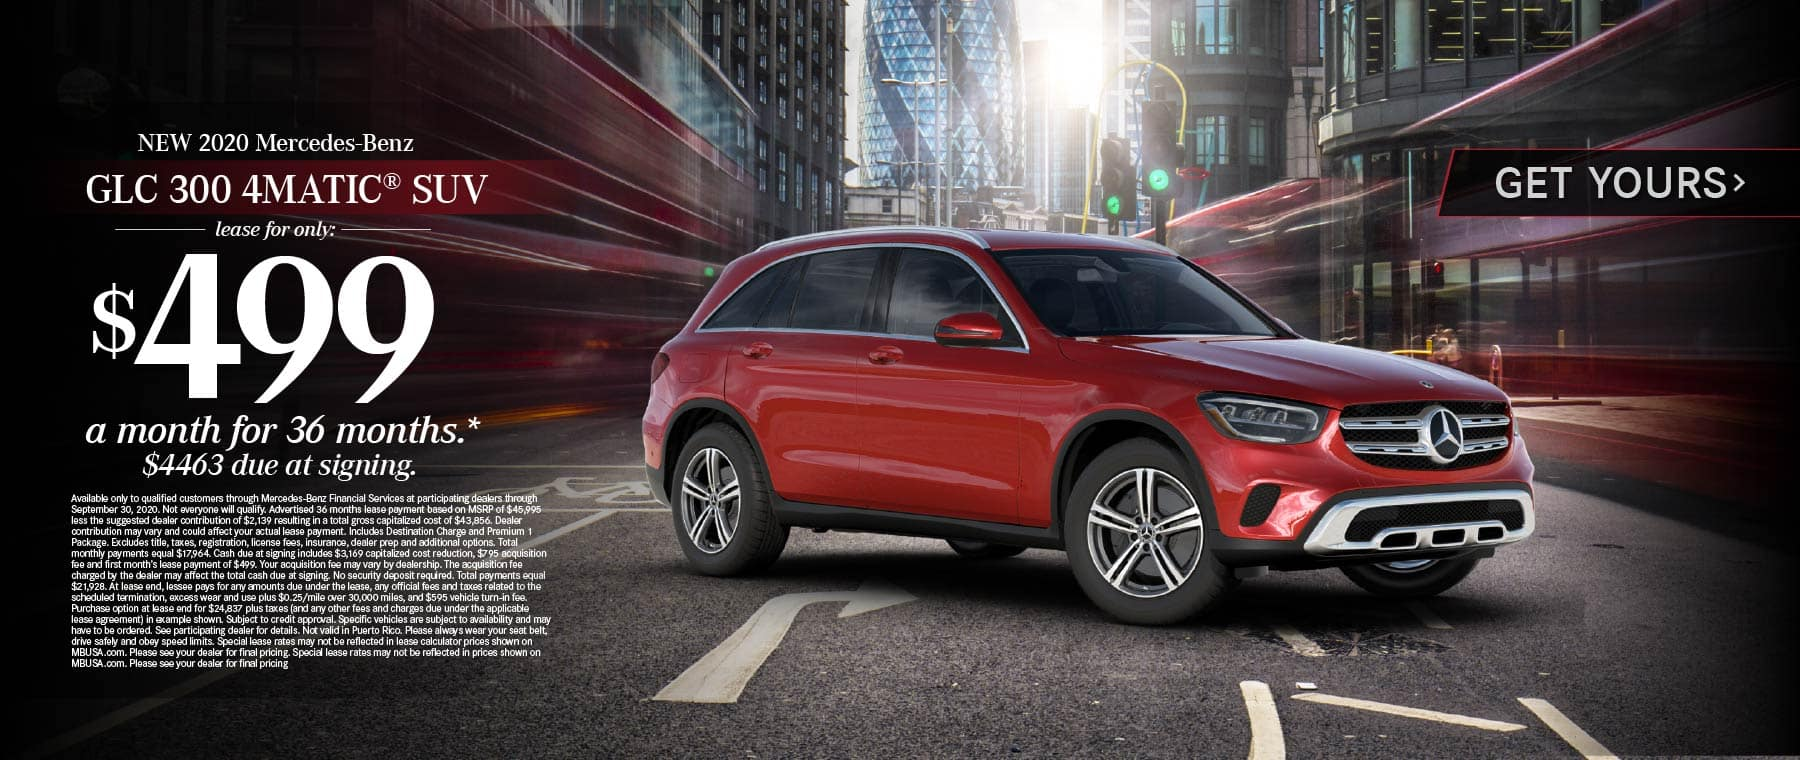 2020 Mercedes Benz GLC 300 4MATIC SUV lease for only: $499 a month for 36 months* Get Yours